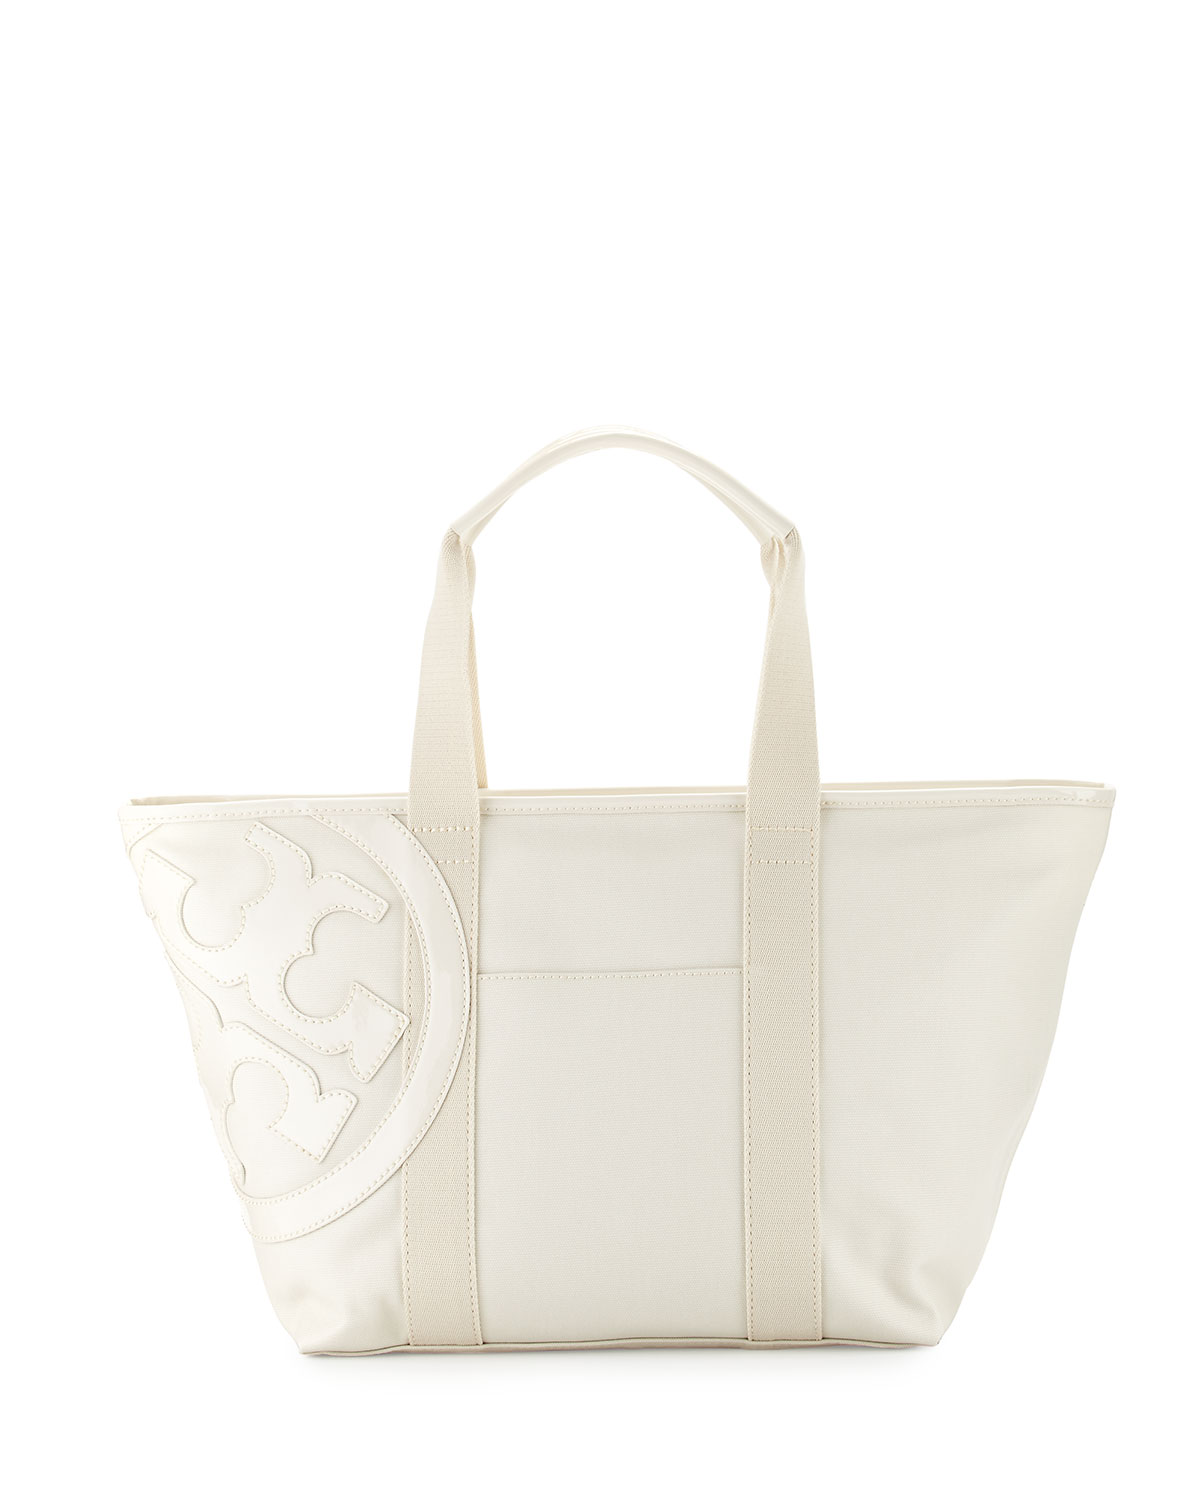 Tory Burch Beach Small Zip Tote Bag, New Ivory, Size: S